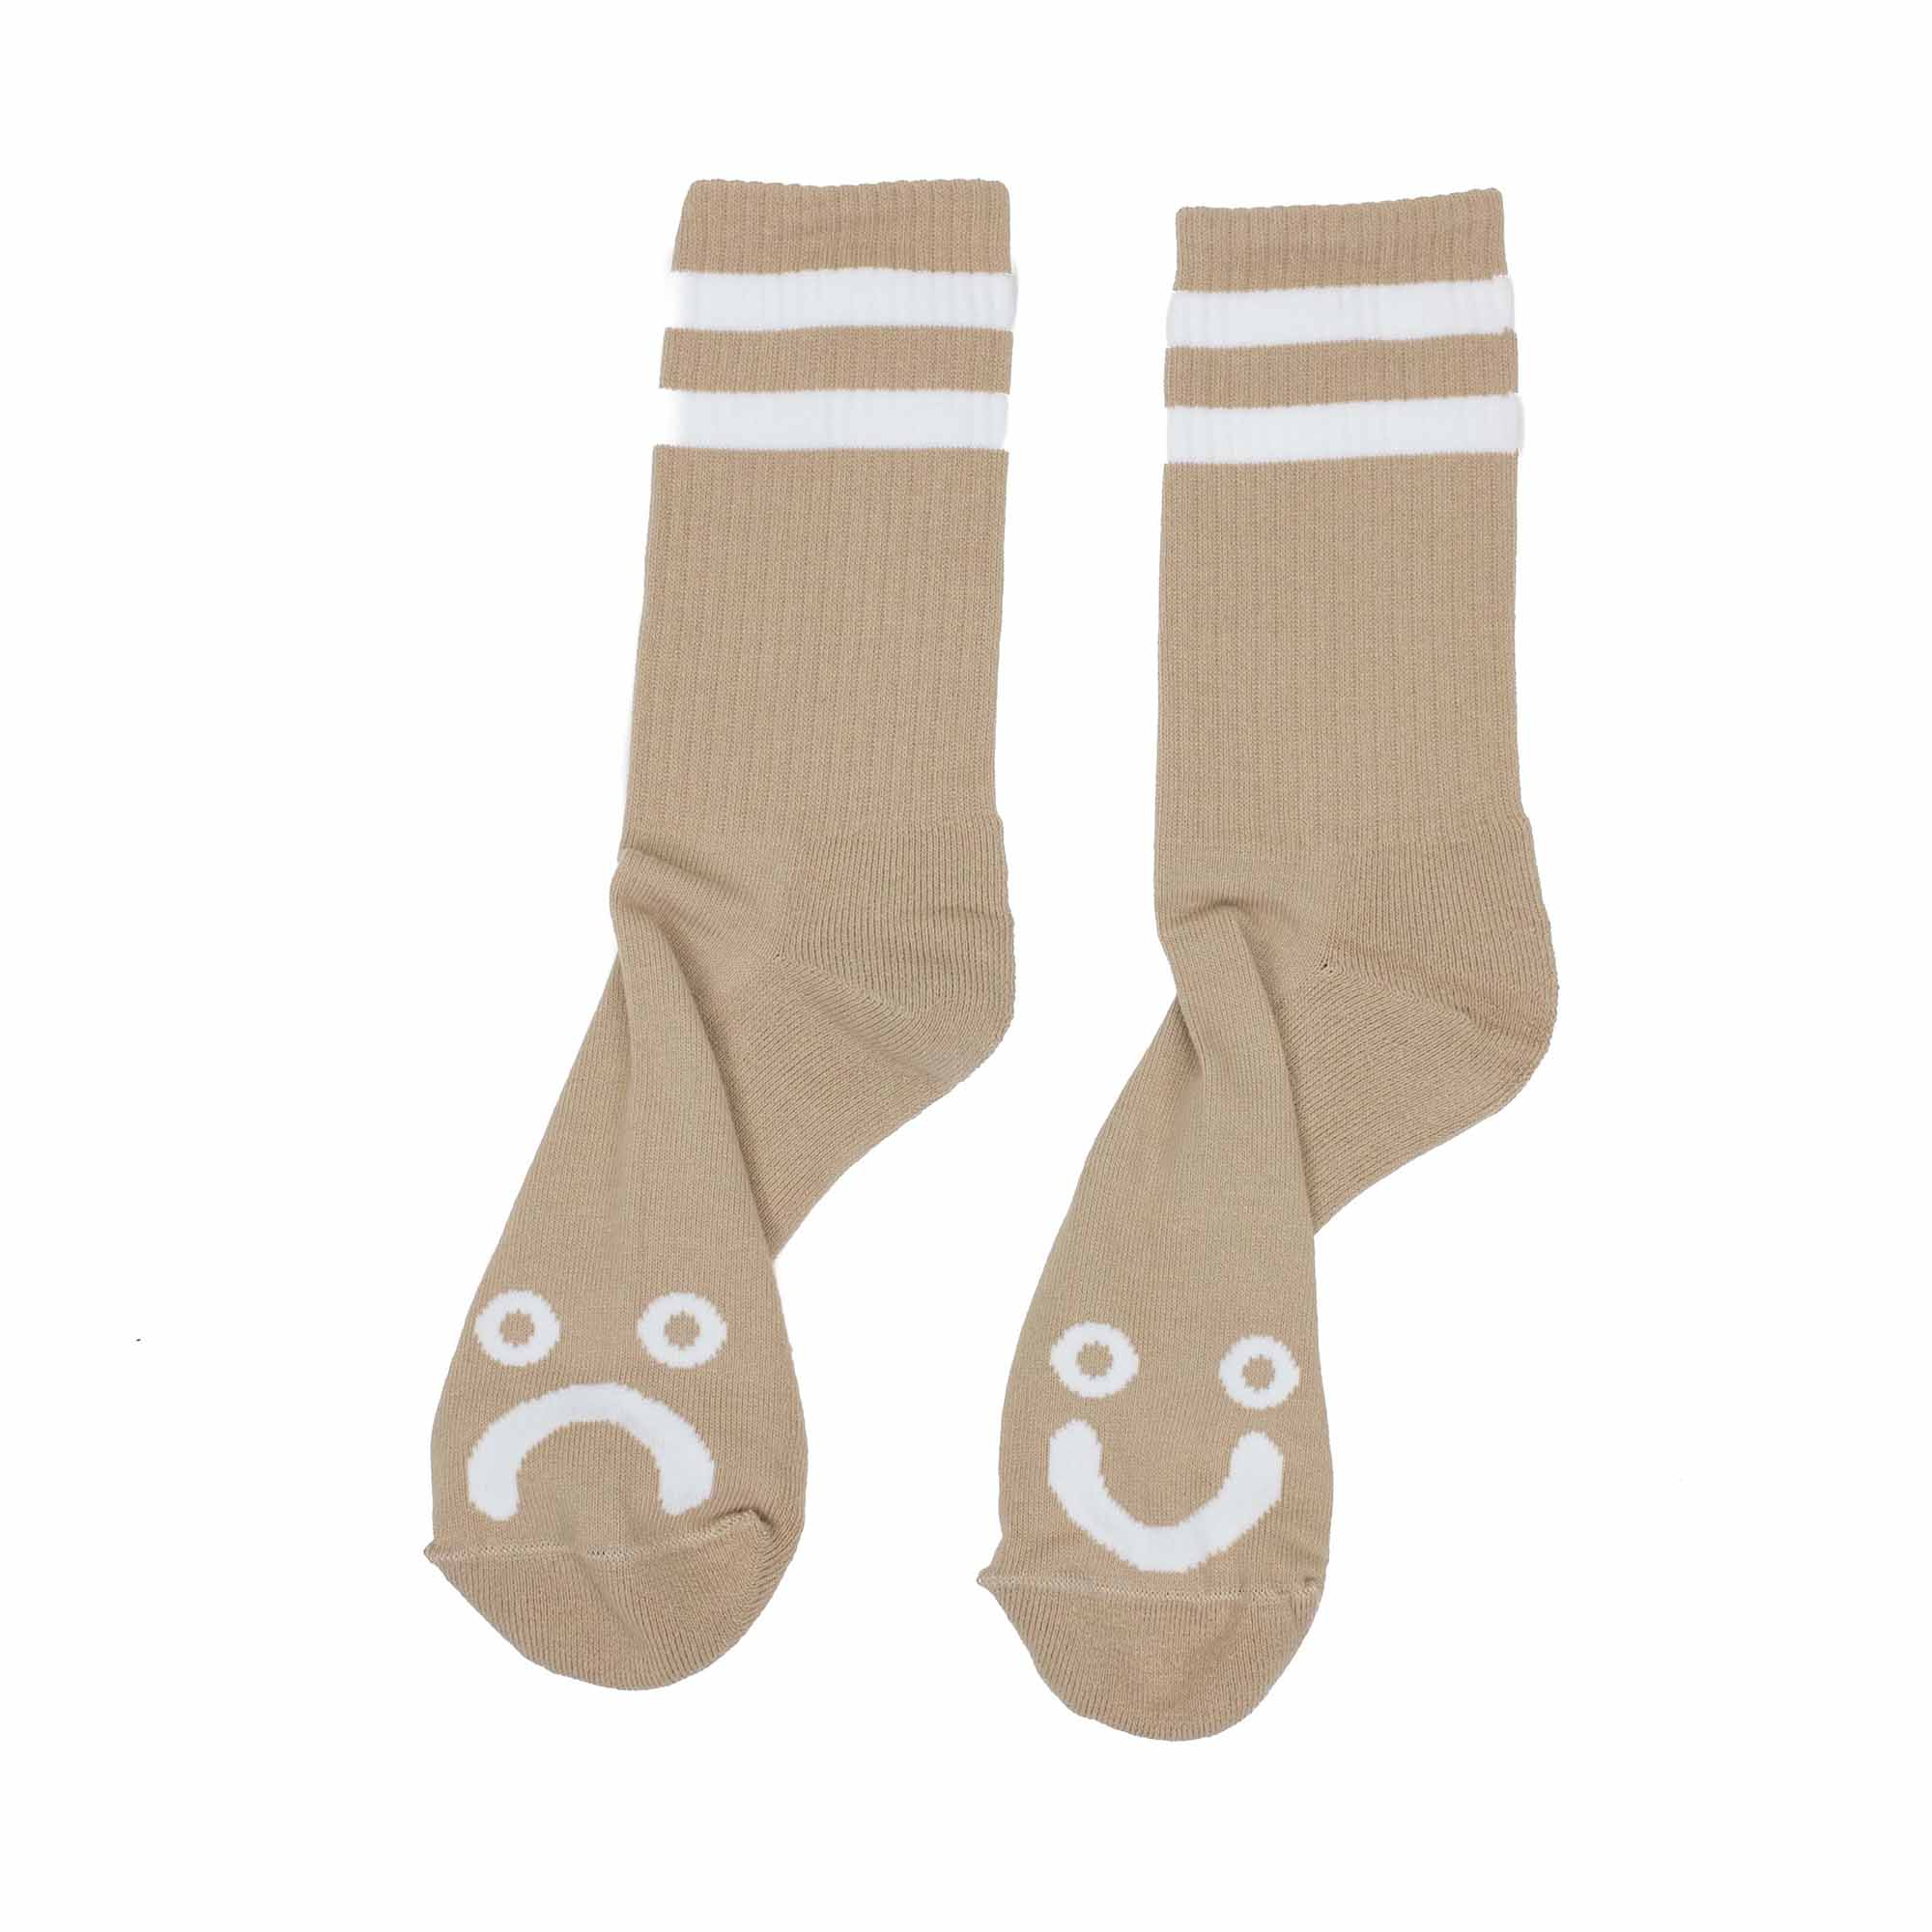 Polar Skate Co. Happy Sad Socks - Sand